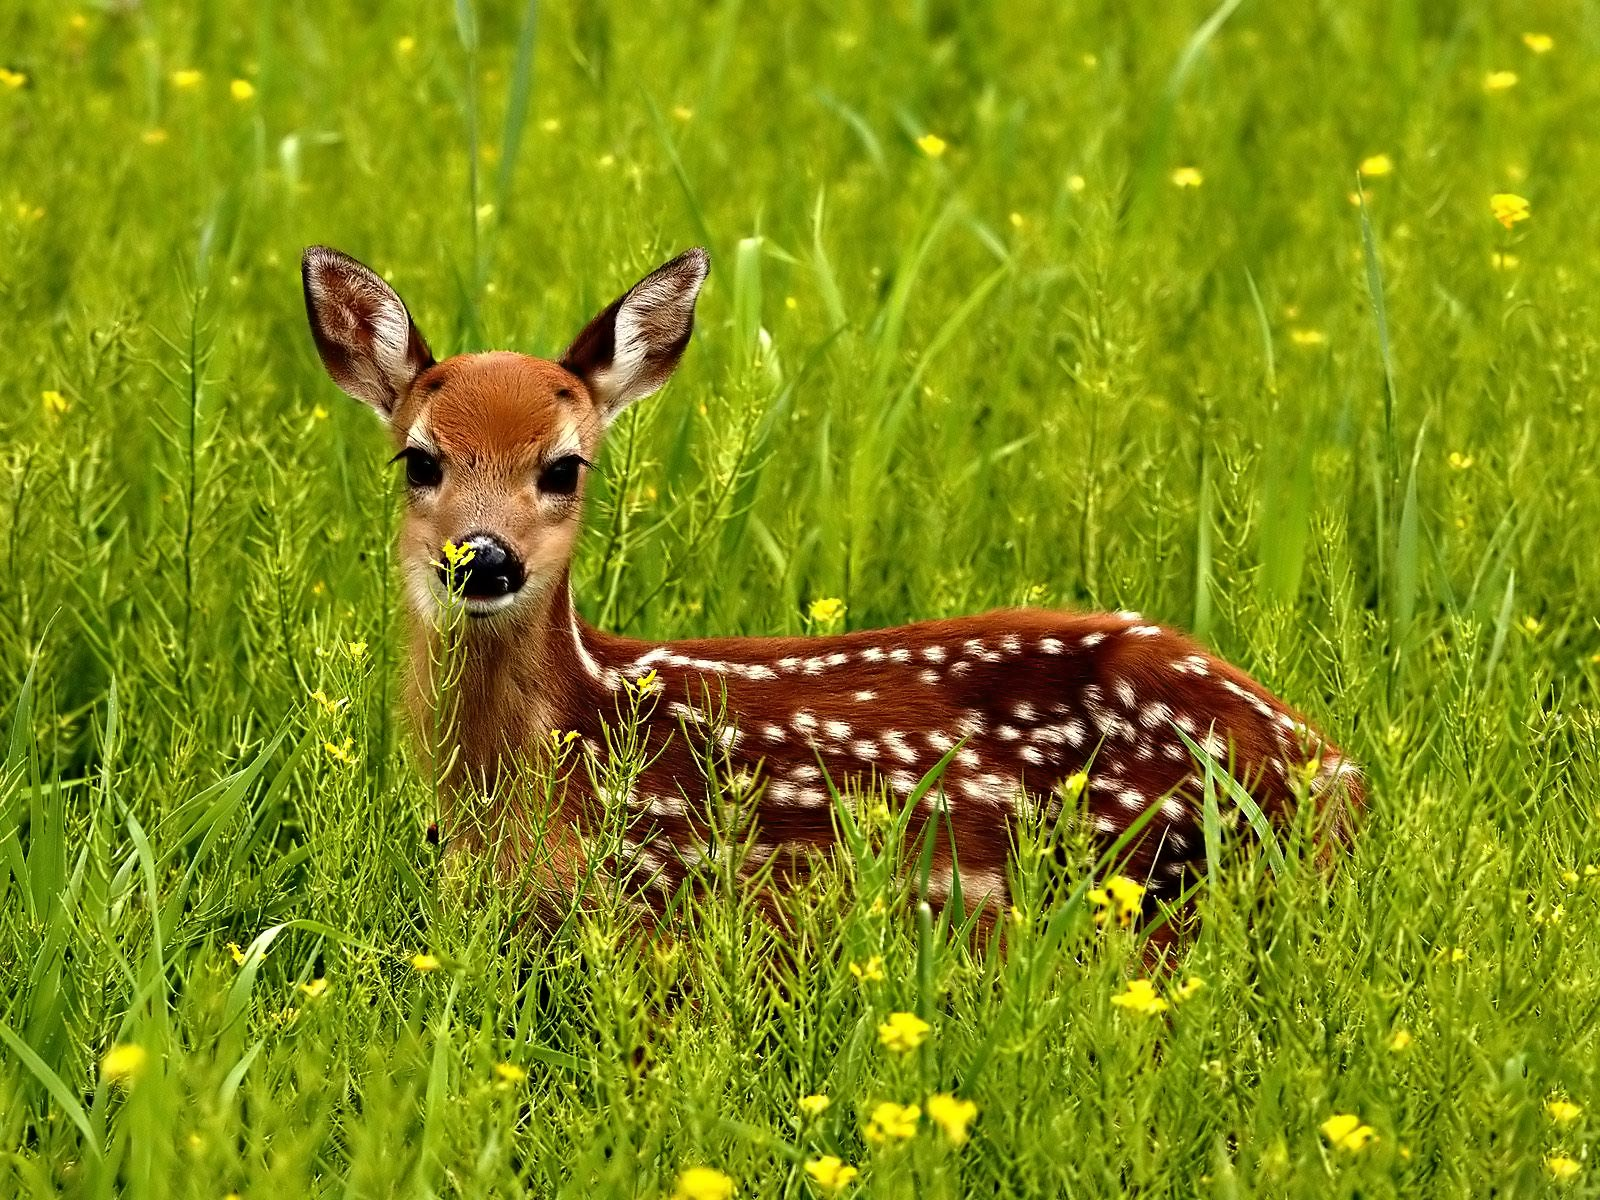 Best And Cute Deer Pictures 25dip 1600x1200